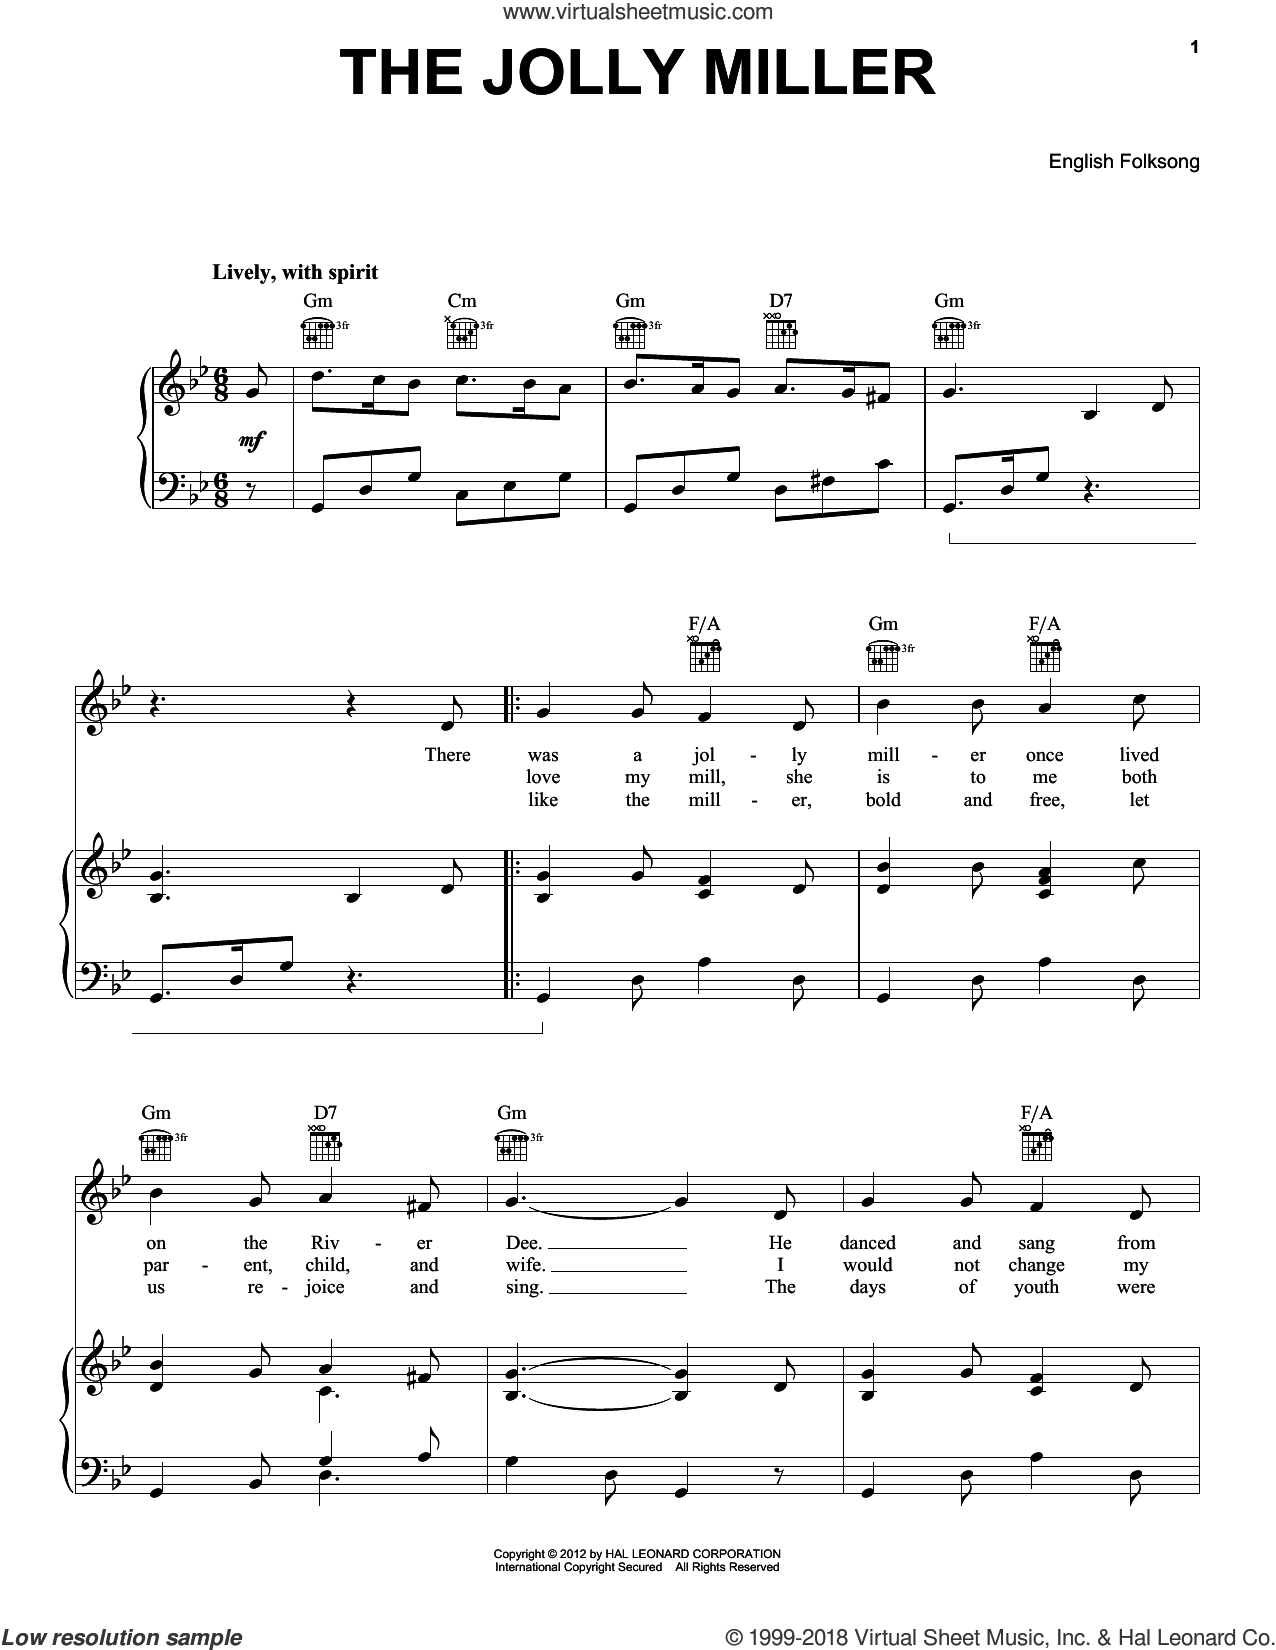 Jolly Miller sheet music for voice, piano or guitar, intermediate skill level